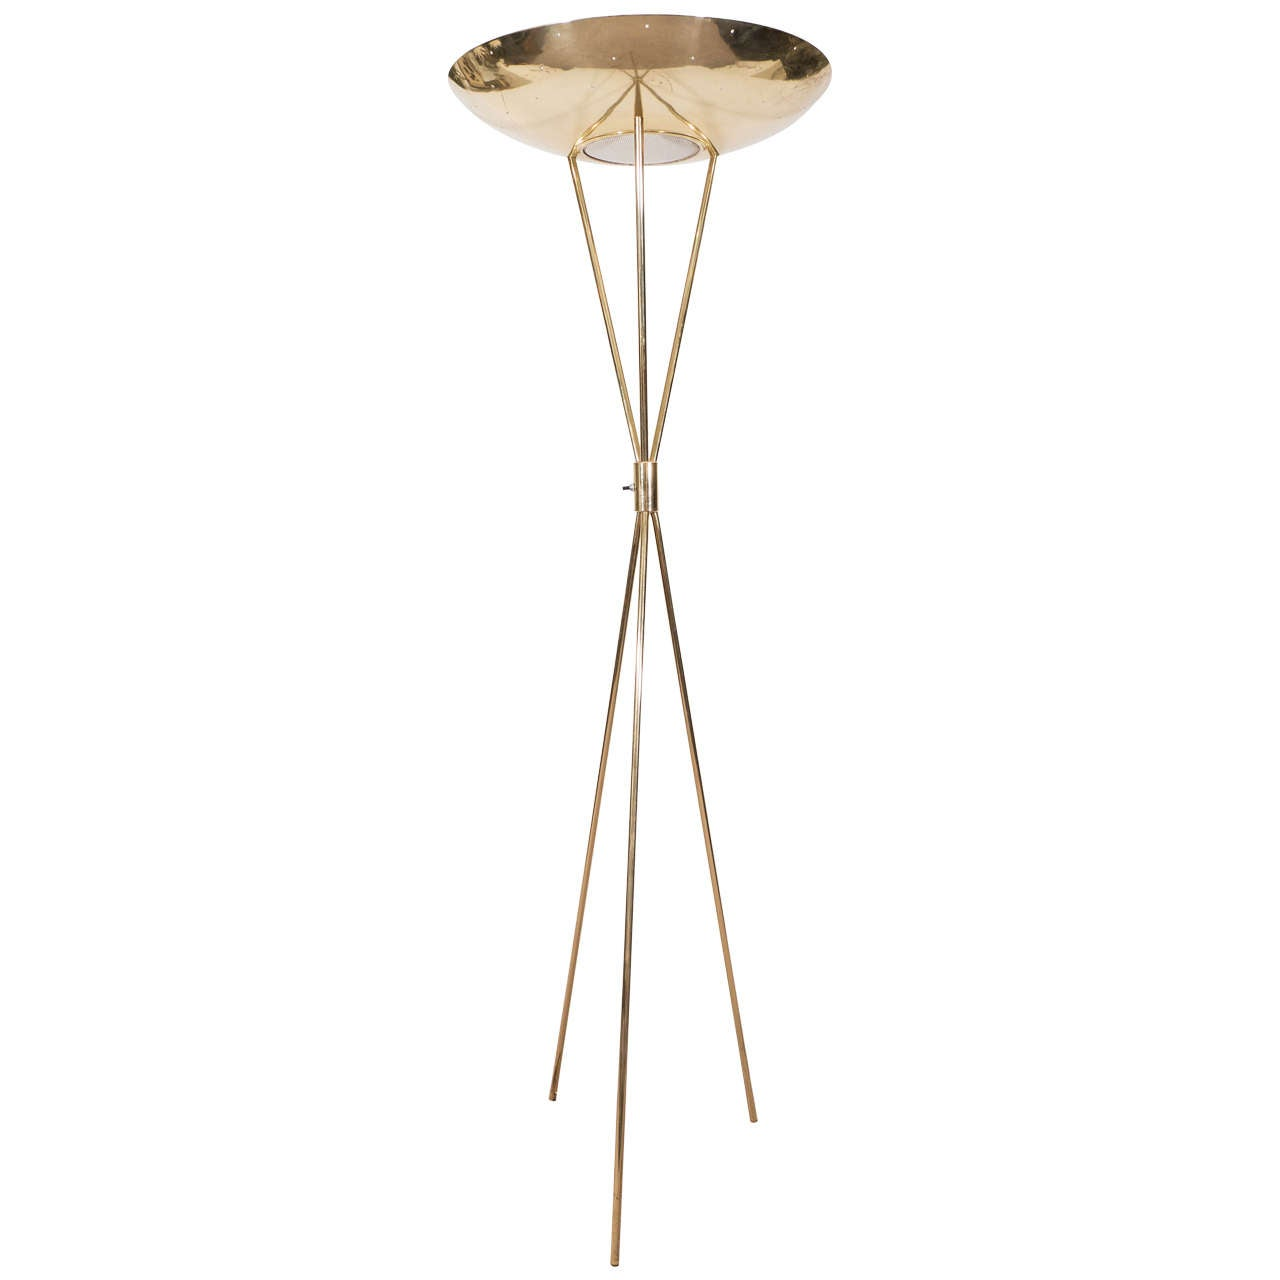 Midcentury brass torchiere tripod floor lamp by gerald thurston midcentury brass torchiere tripod floor lamp by gerald thurston for lightolier at 1stdibs geotapseo Image collections